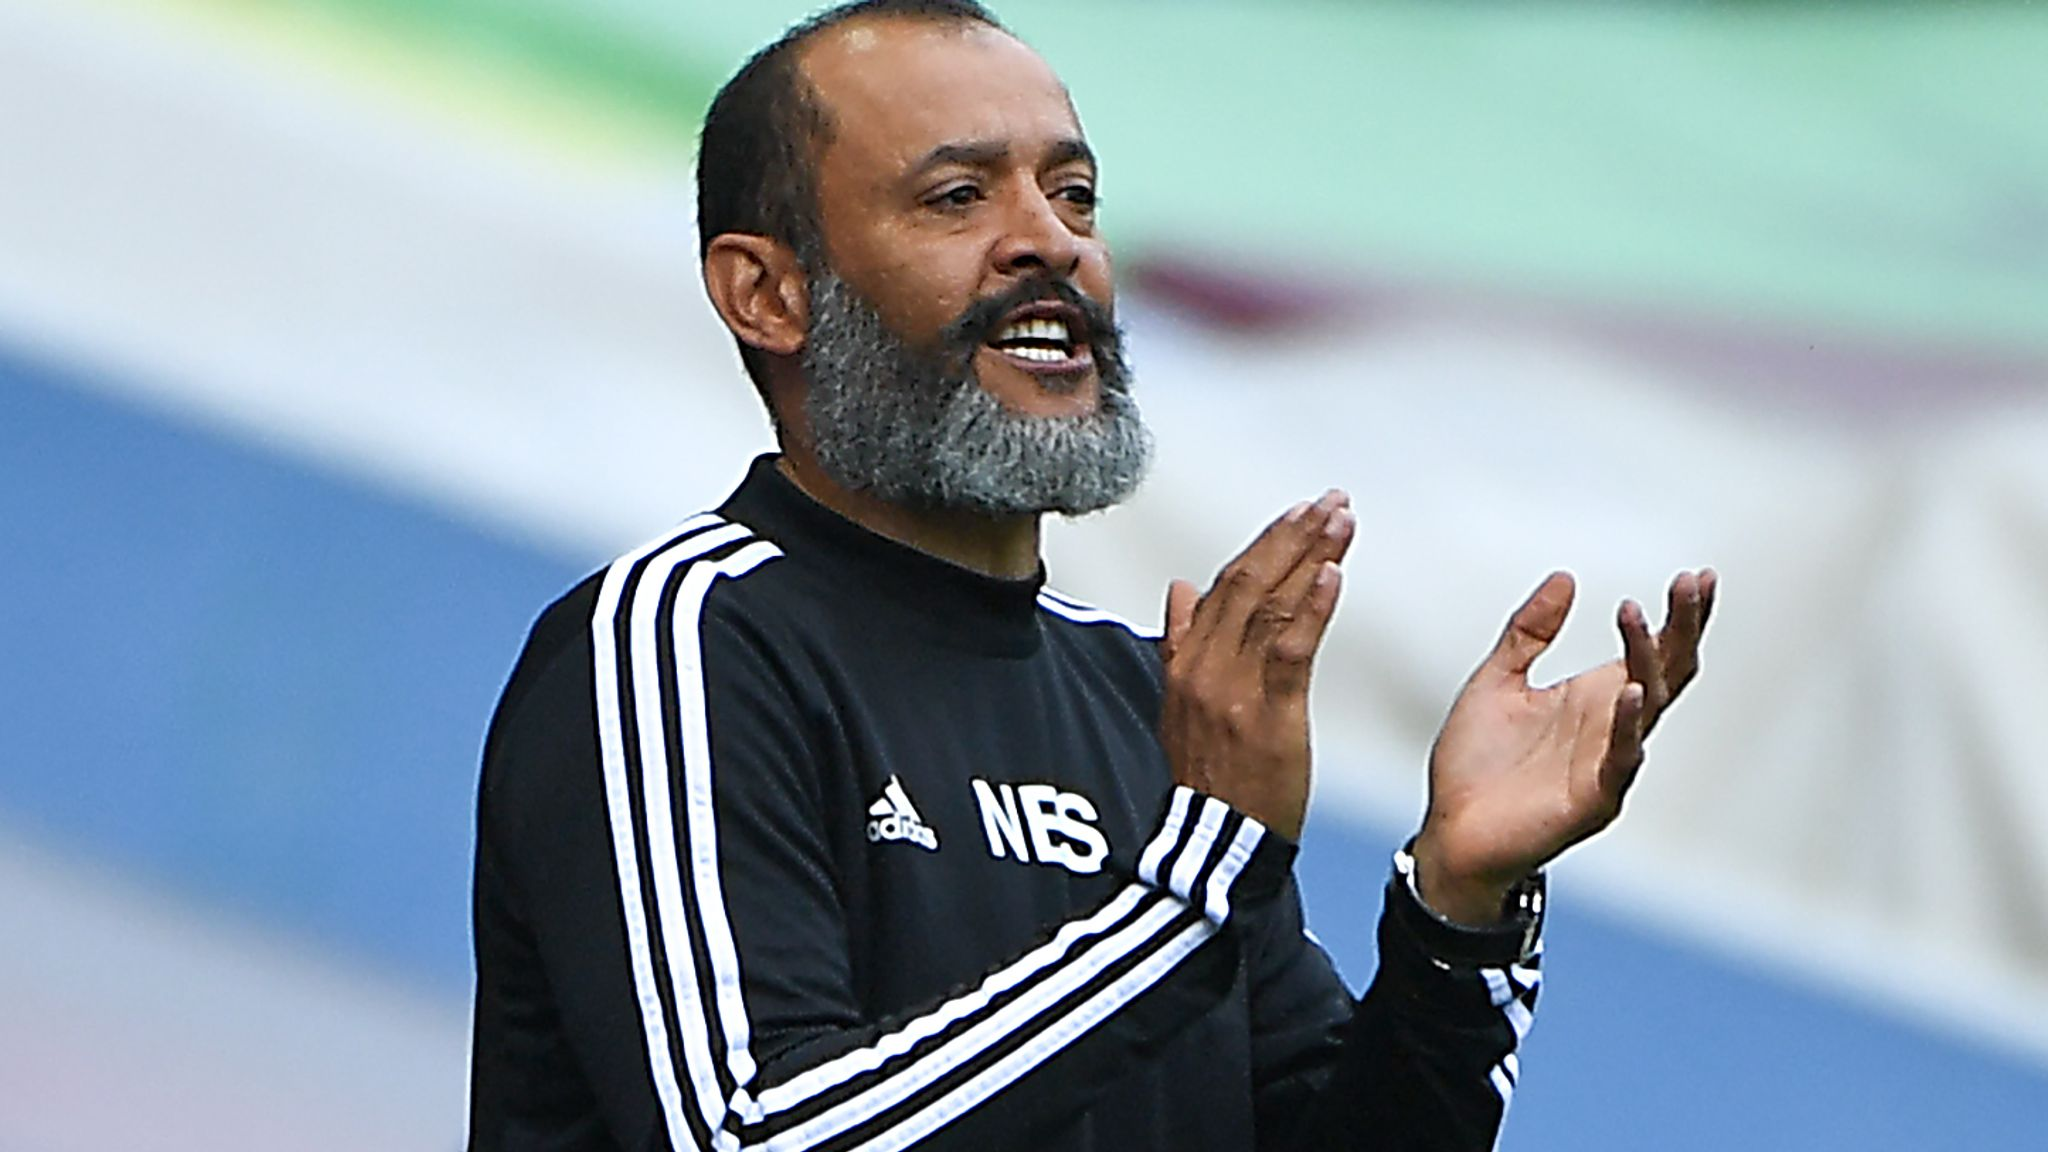 Wolves announced that Nuno Espirito Santo has entered into a new three-year contract to continue as the manager of the club.